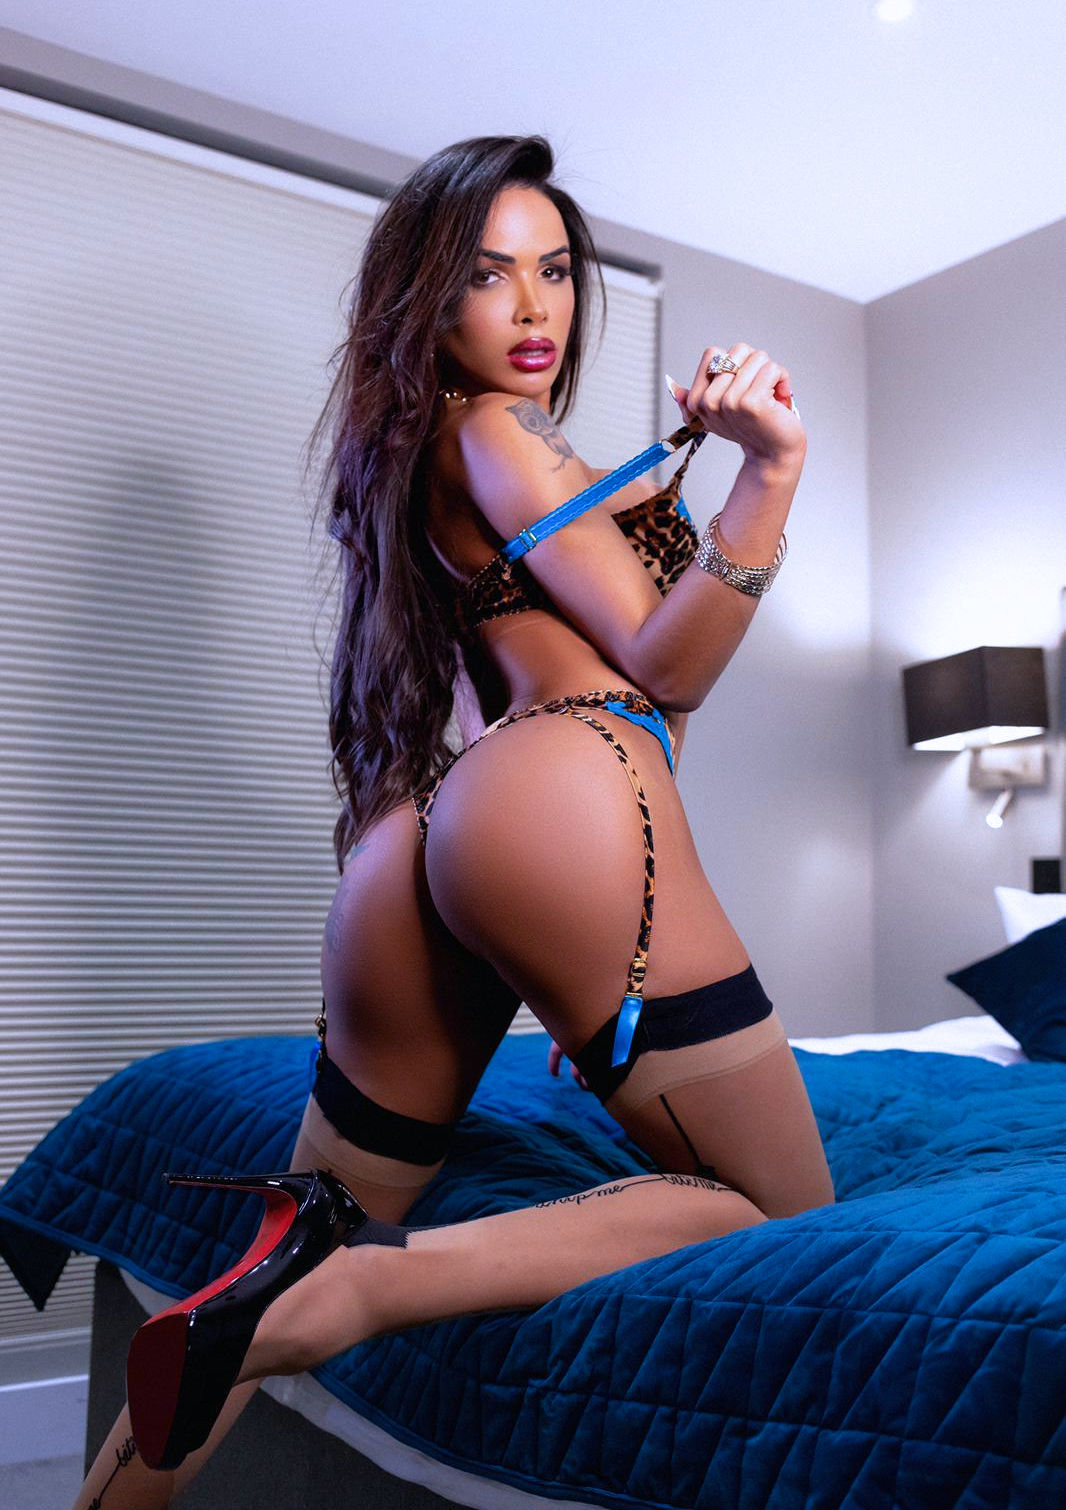 London Escort TS Bruna Ferrari